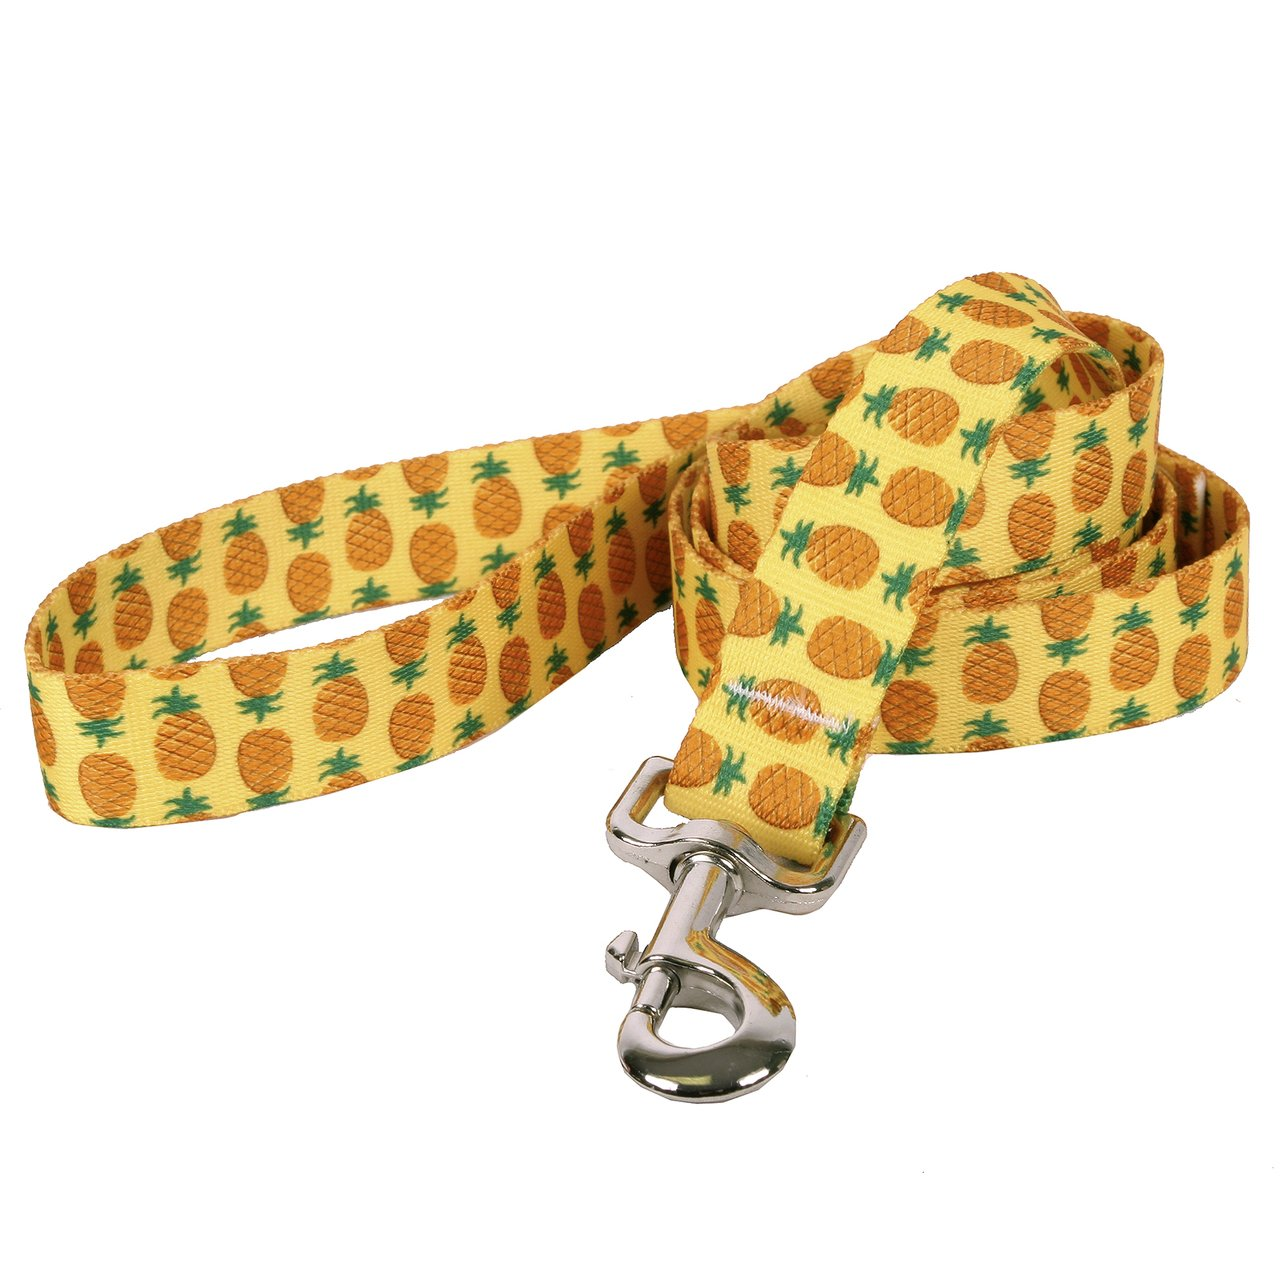 Yellow Dog Design Pineapples Yellow Dog Leash, Large/1'' Wide and 5' (60'') long